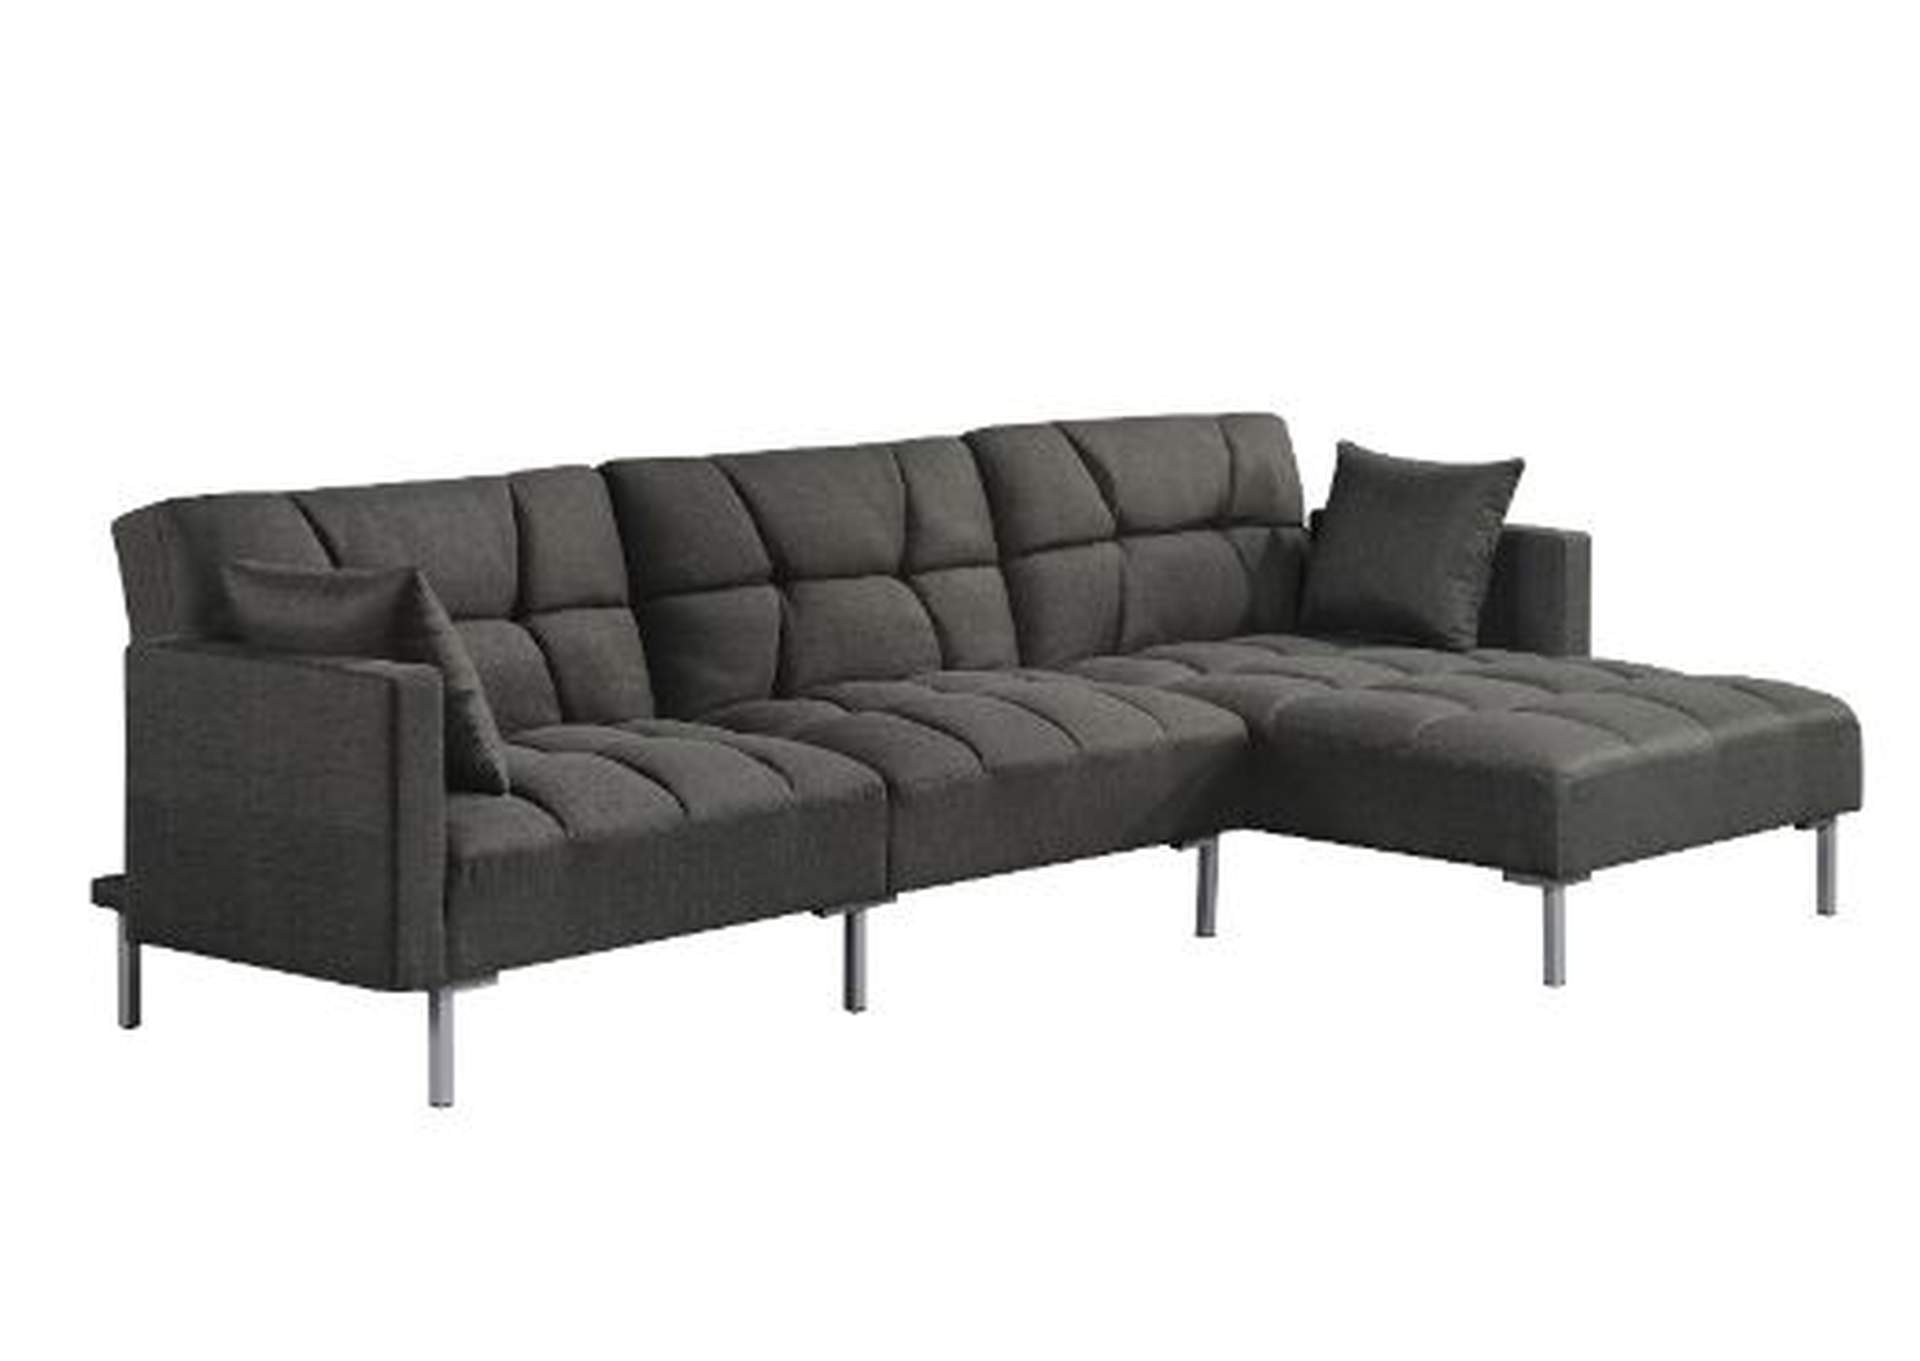 Duzzy Gray Reversible Adjustable Sectional Sofa W 2 Pillows Squan Furniture